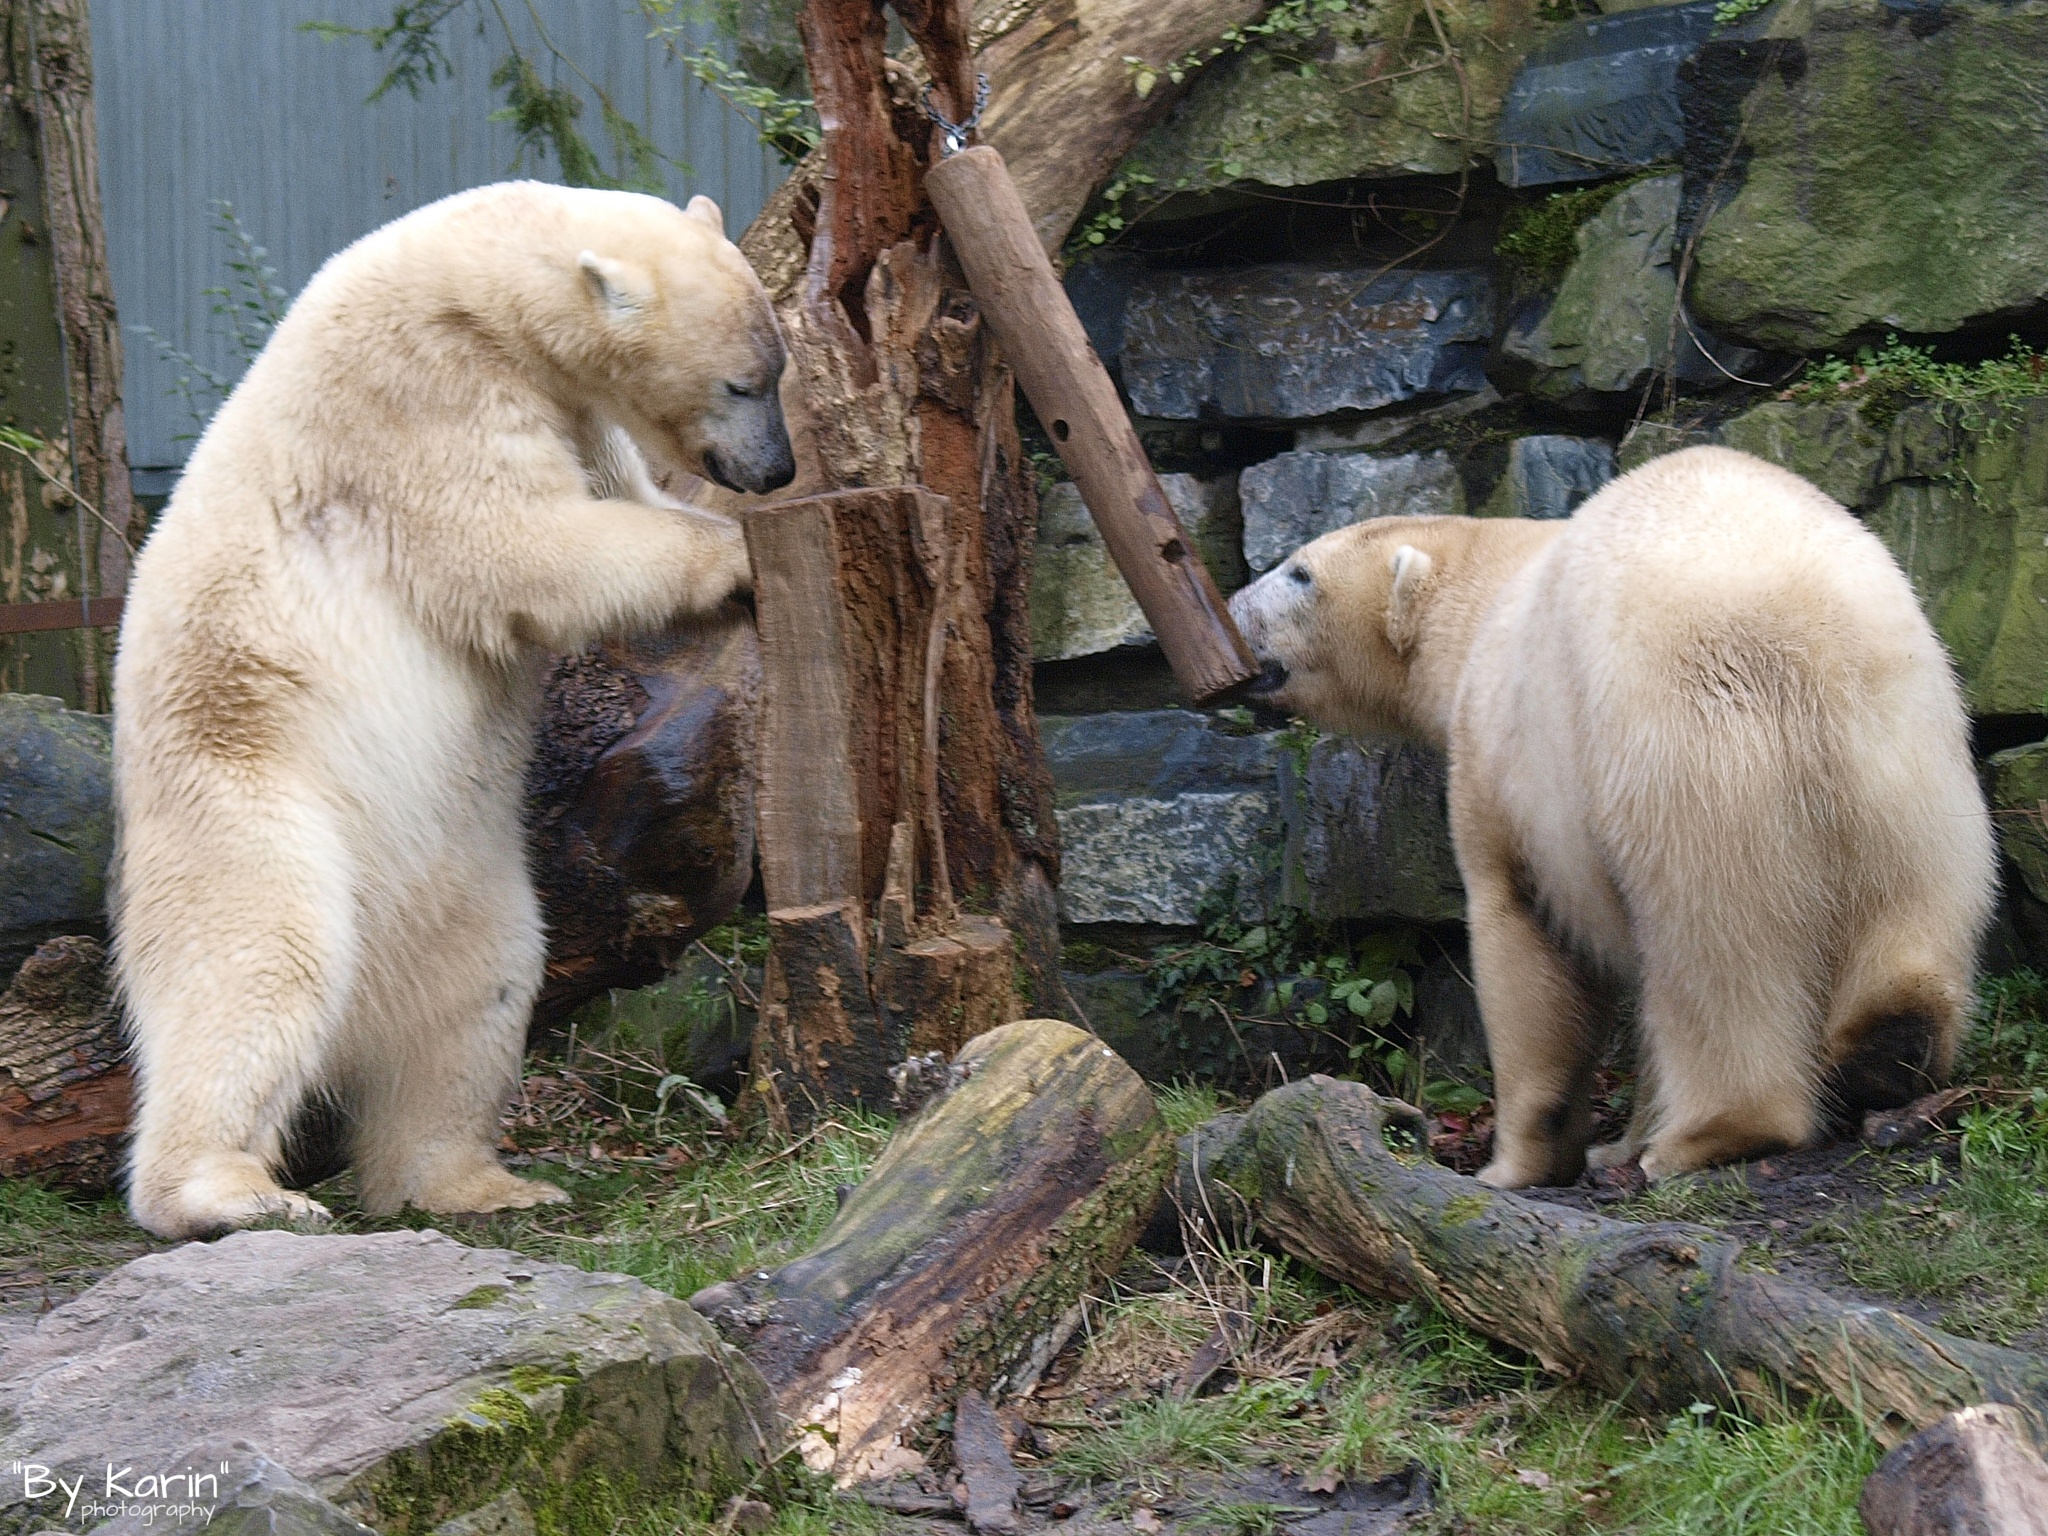 Polar bears by ByKarinPhotography